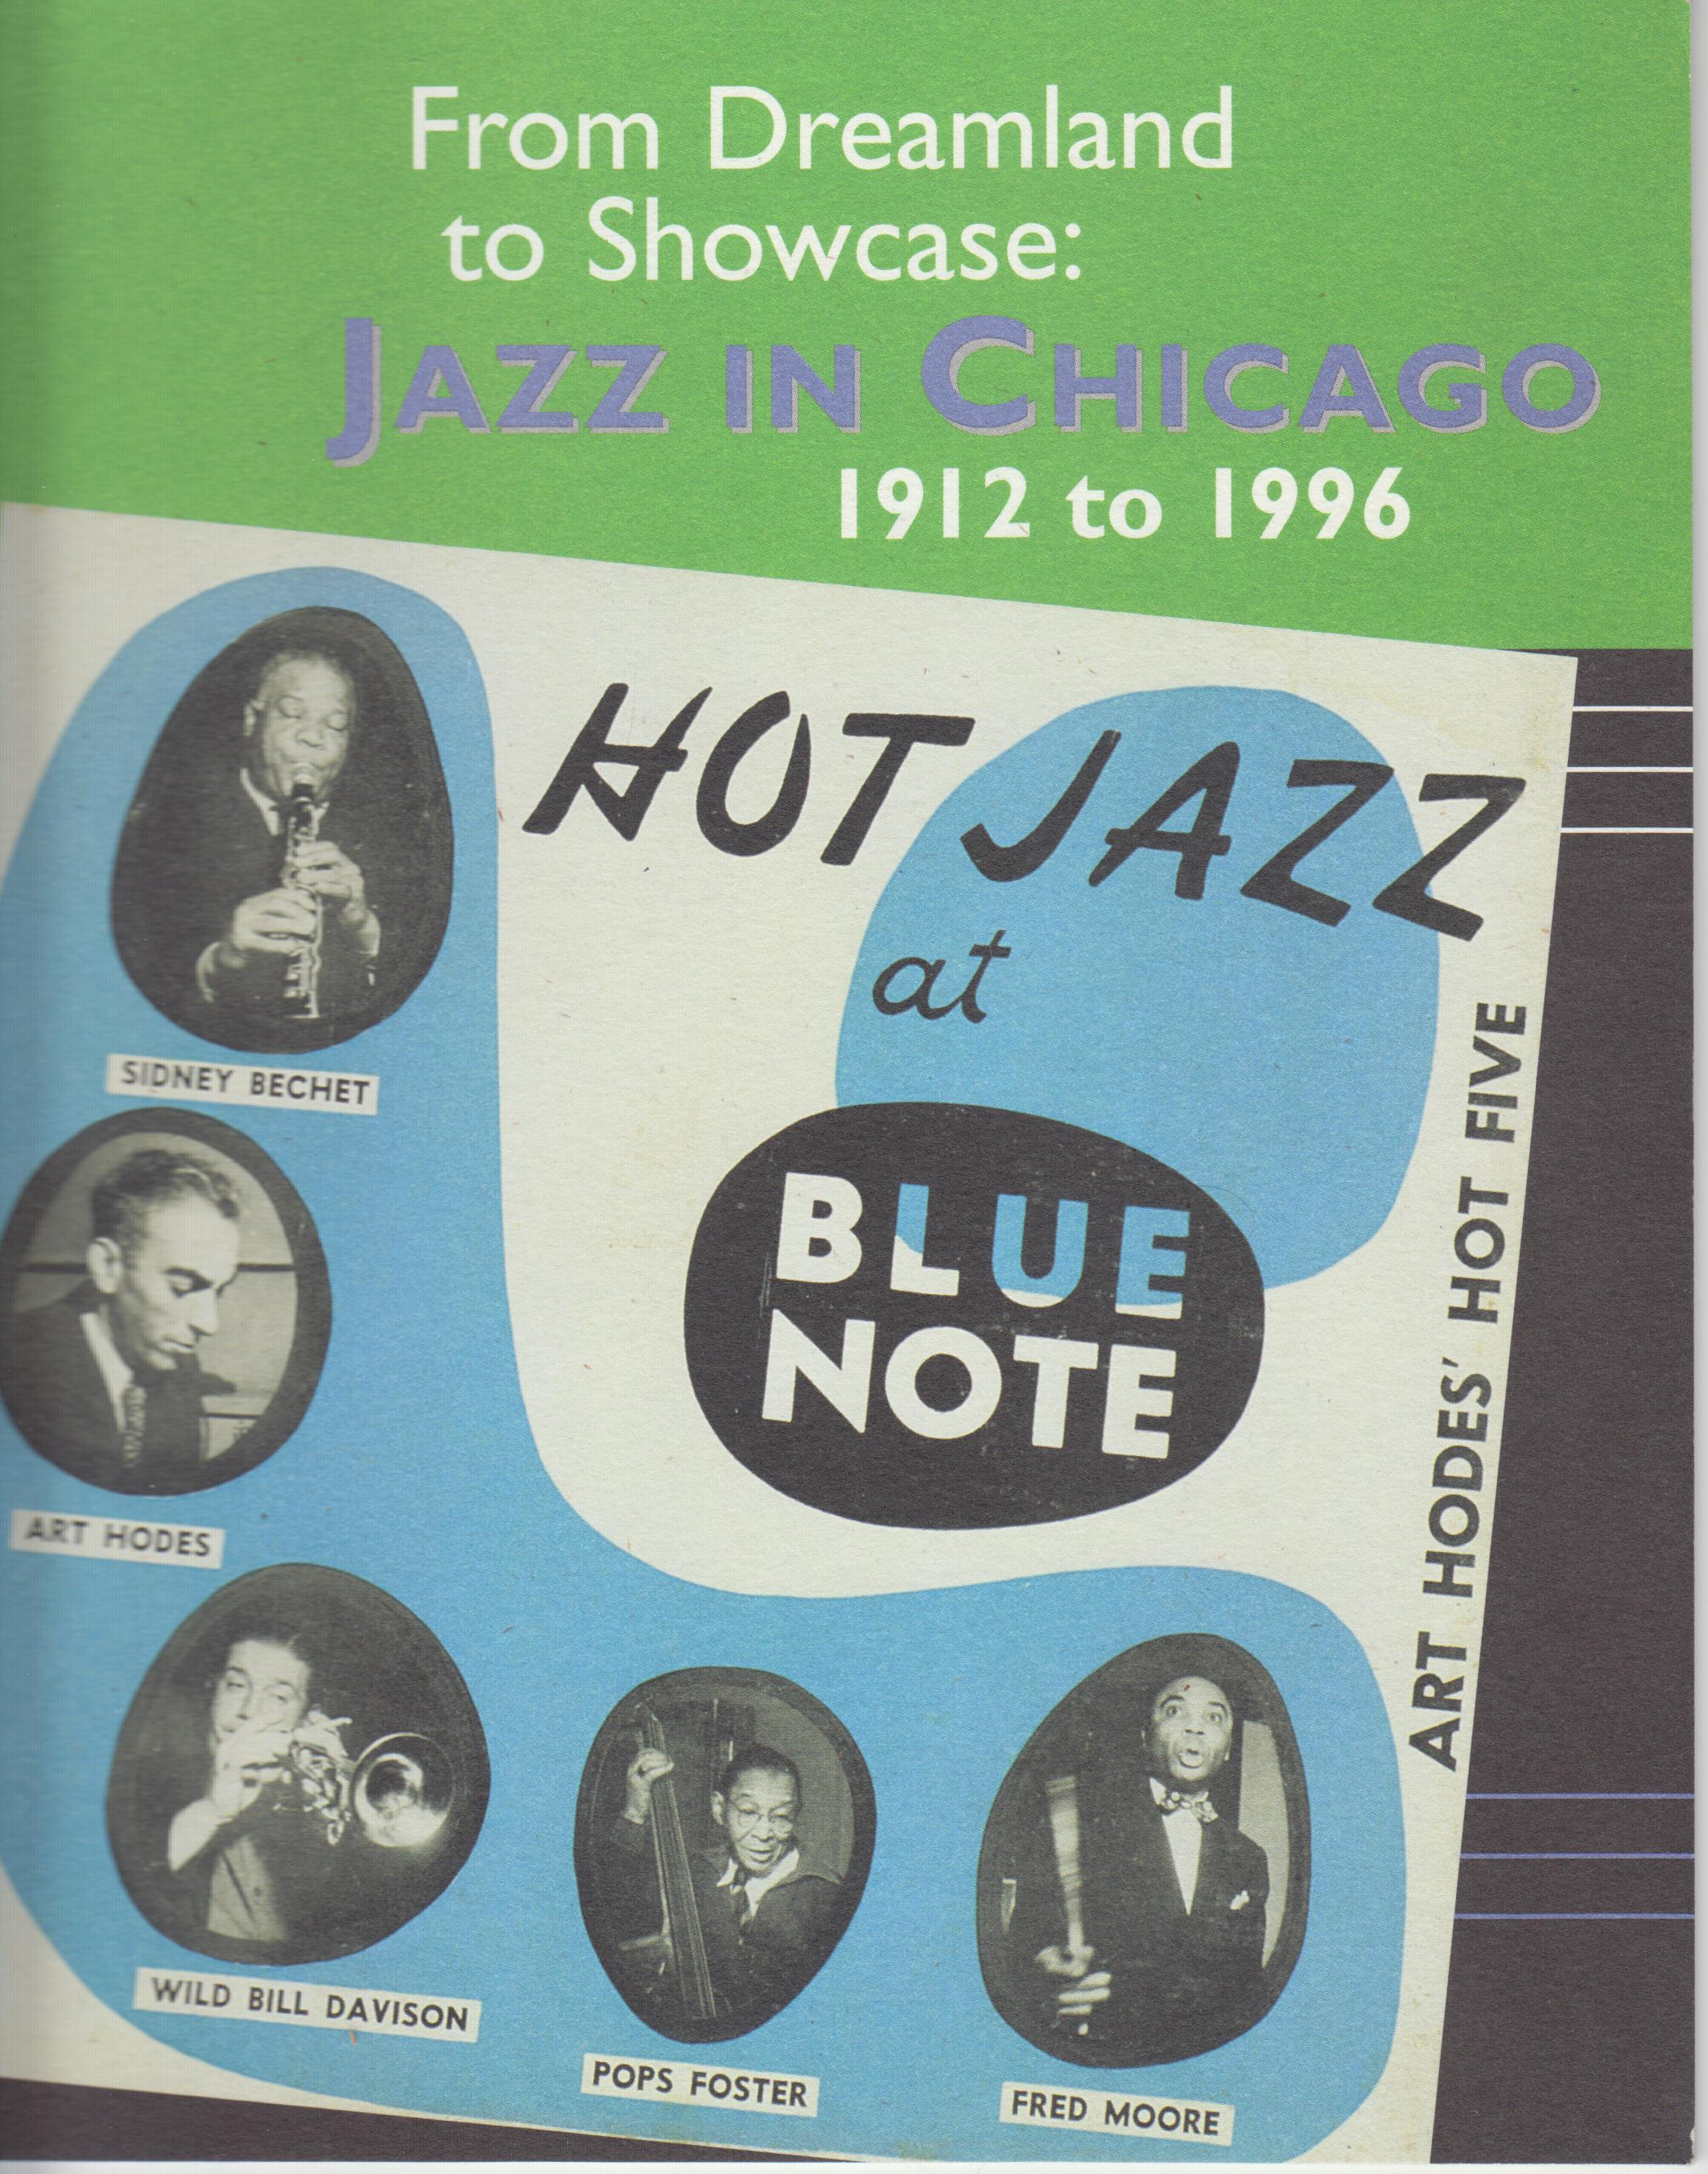 Image for From Dreamland to Showcase. Jazz in Chicago, 1912-1996